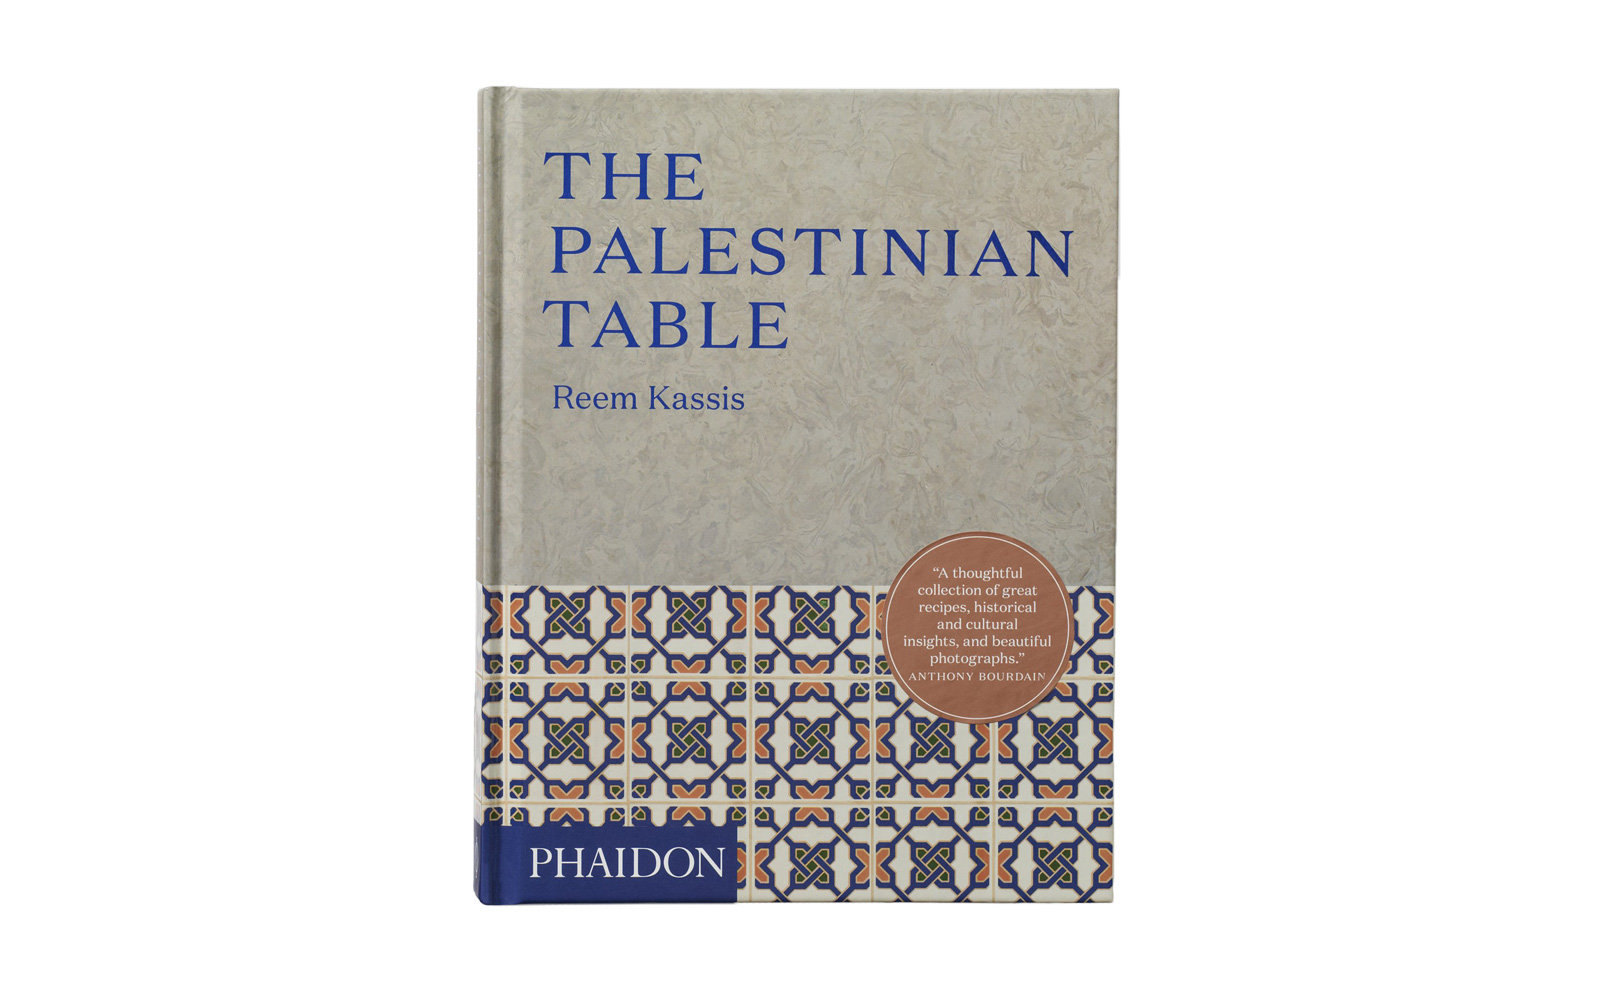 The Palestinian Table, by Reem Kassis